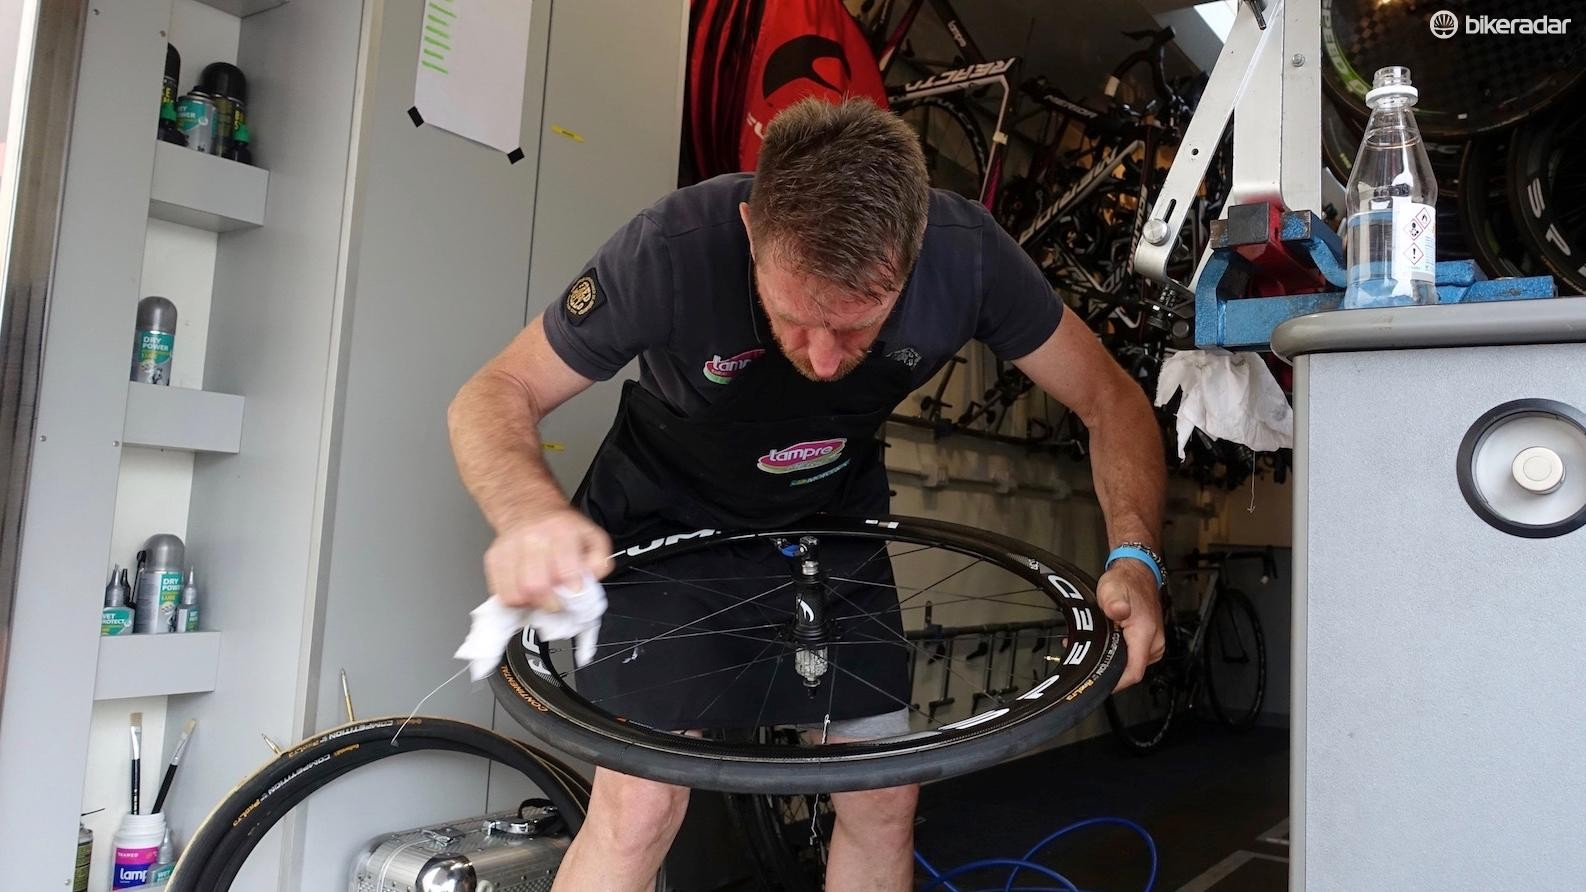 Lastly, the Italian mechanic wiped off any glue that seeped out after he pressed the tyre into the rim. Done